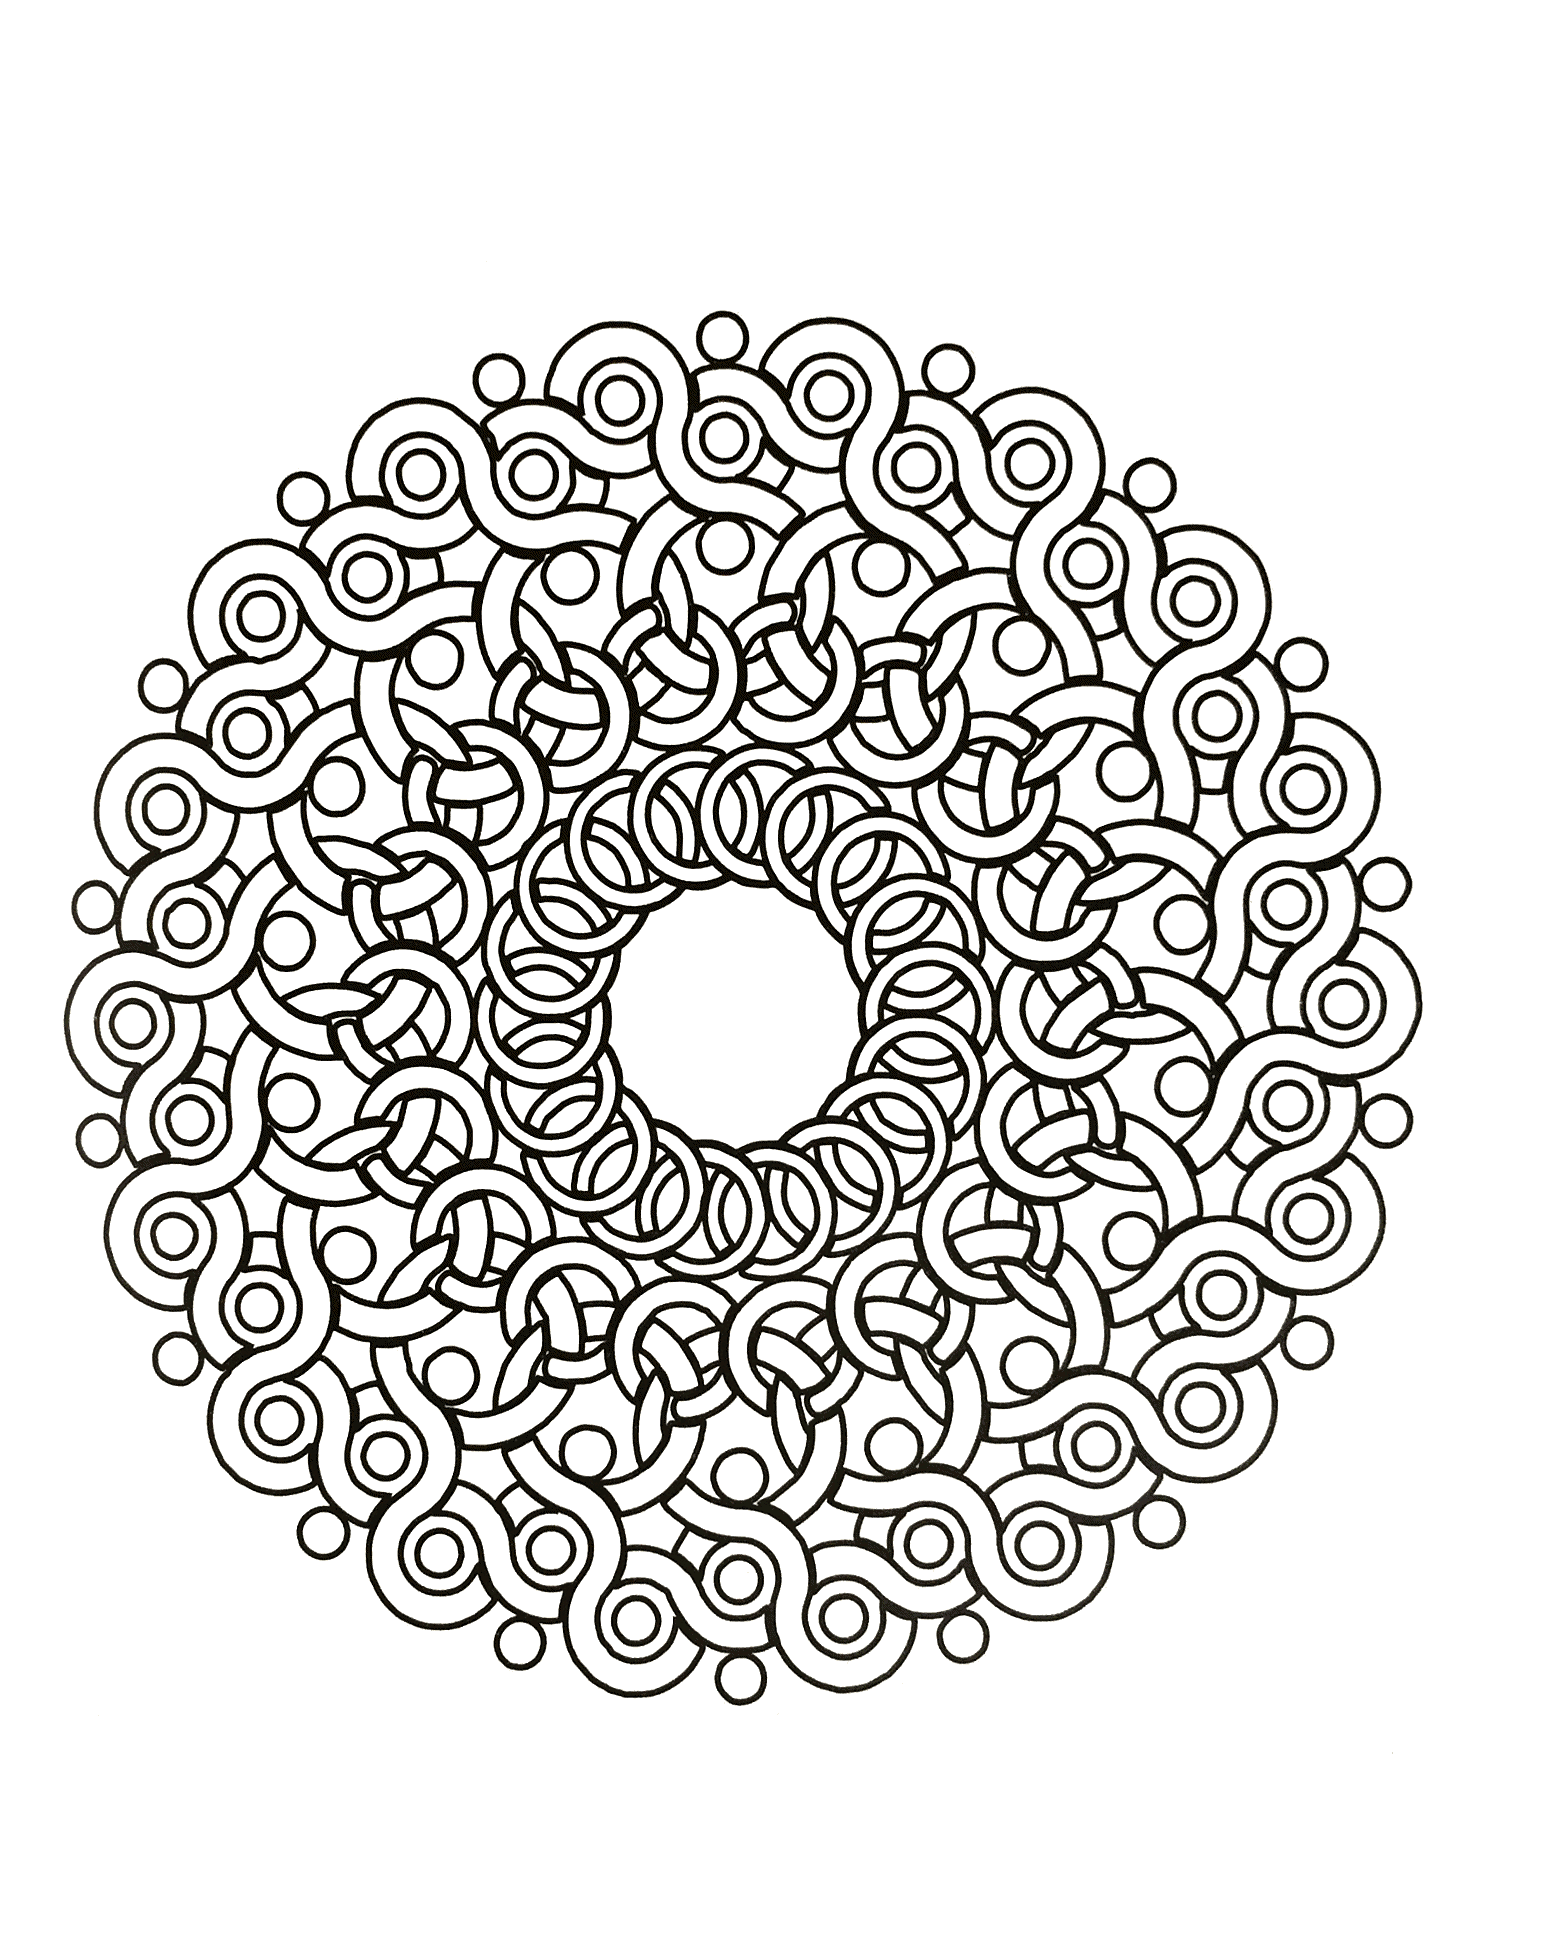 Charmant Dessin à Colorier Gratuit Mandala 75 Pour Coloriage Pages for Dessin à Colorier Gratuit Mandala